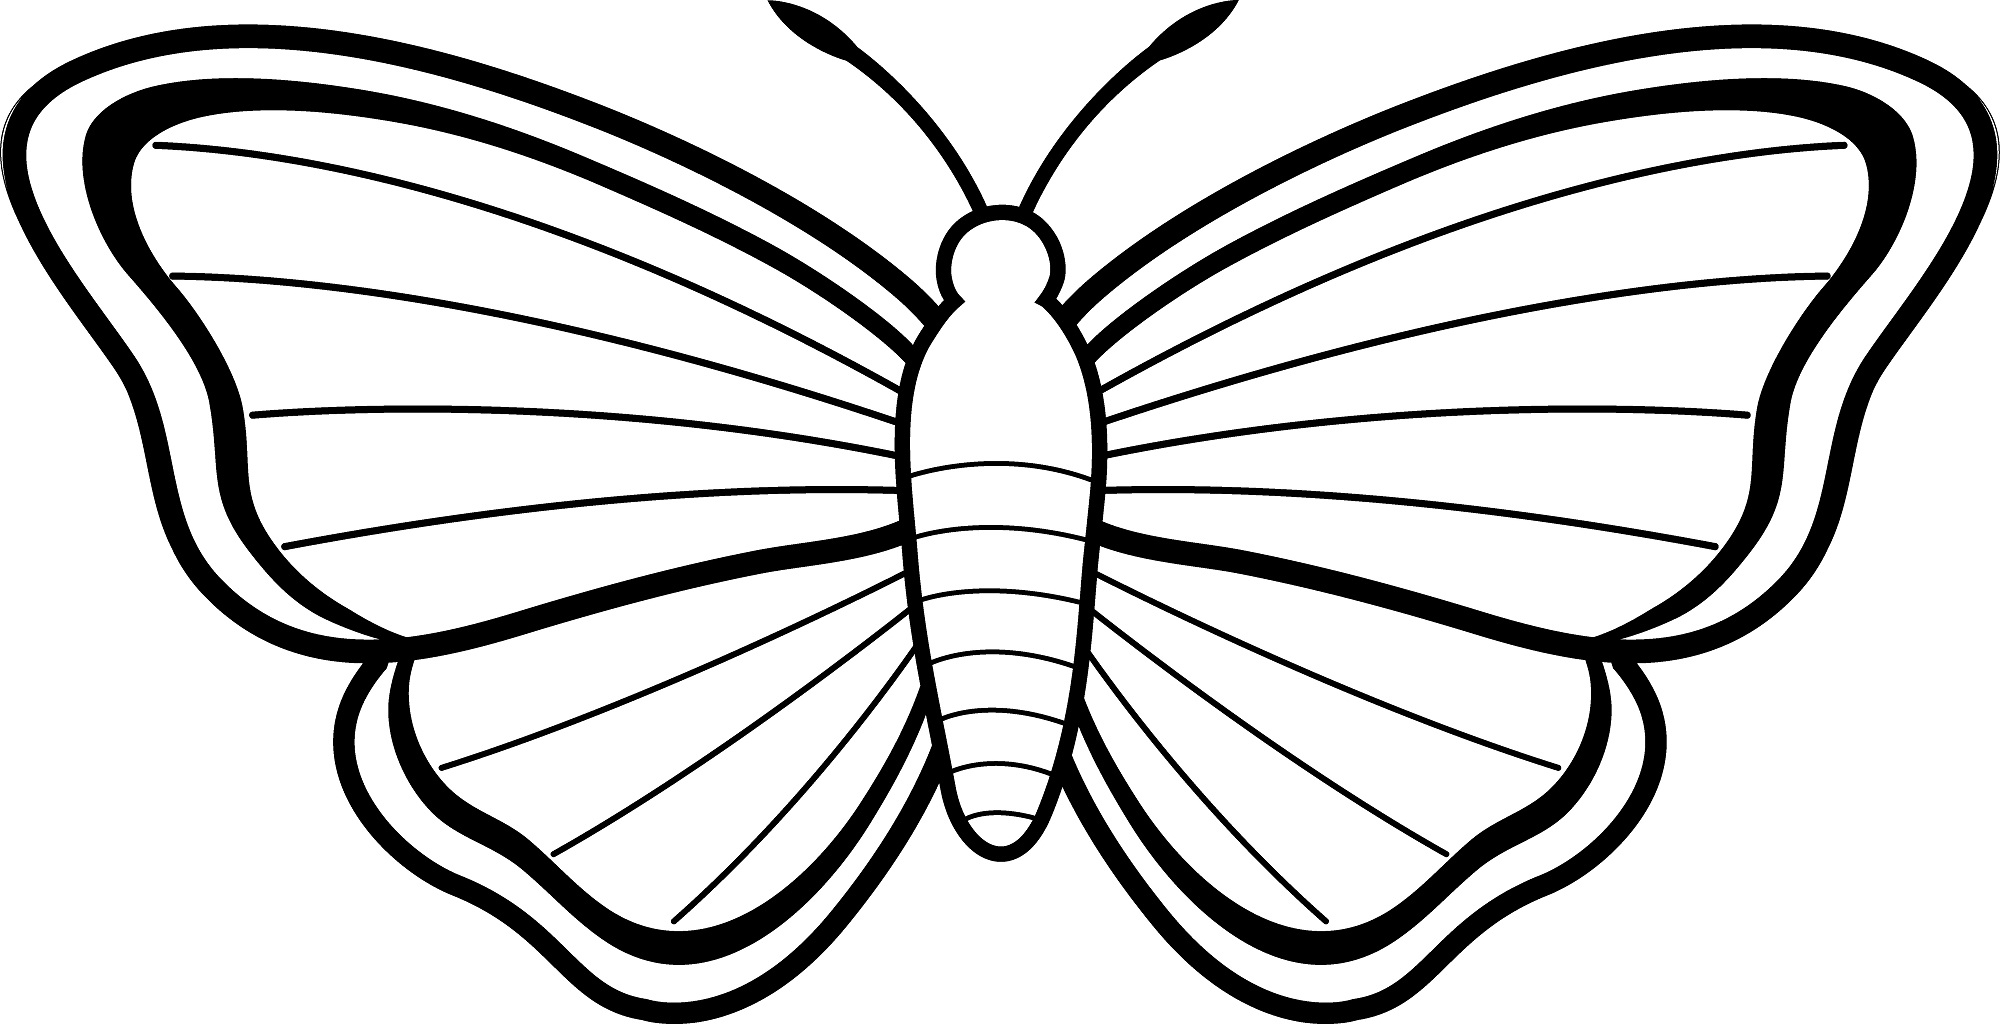 Colouring in pages for girls butterflies -  Free Printable Butterfly Coloring Pages For Kids